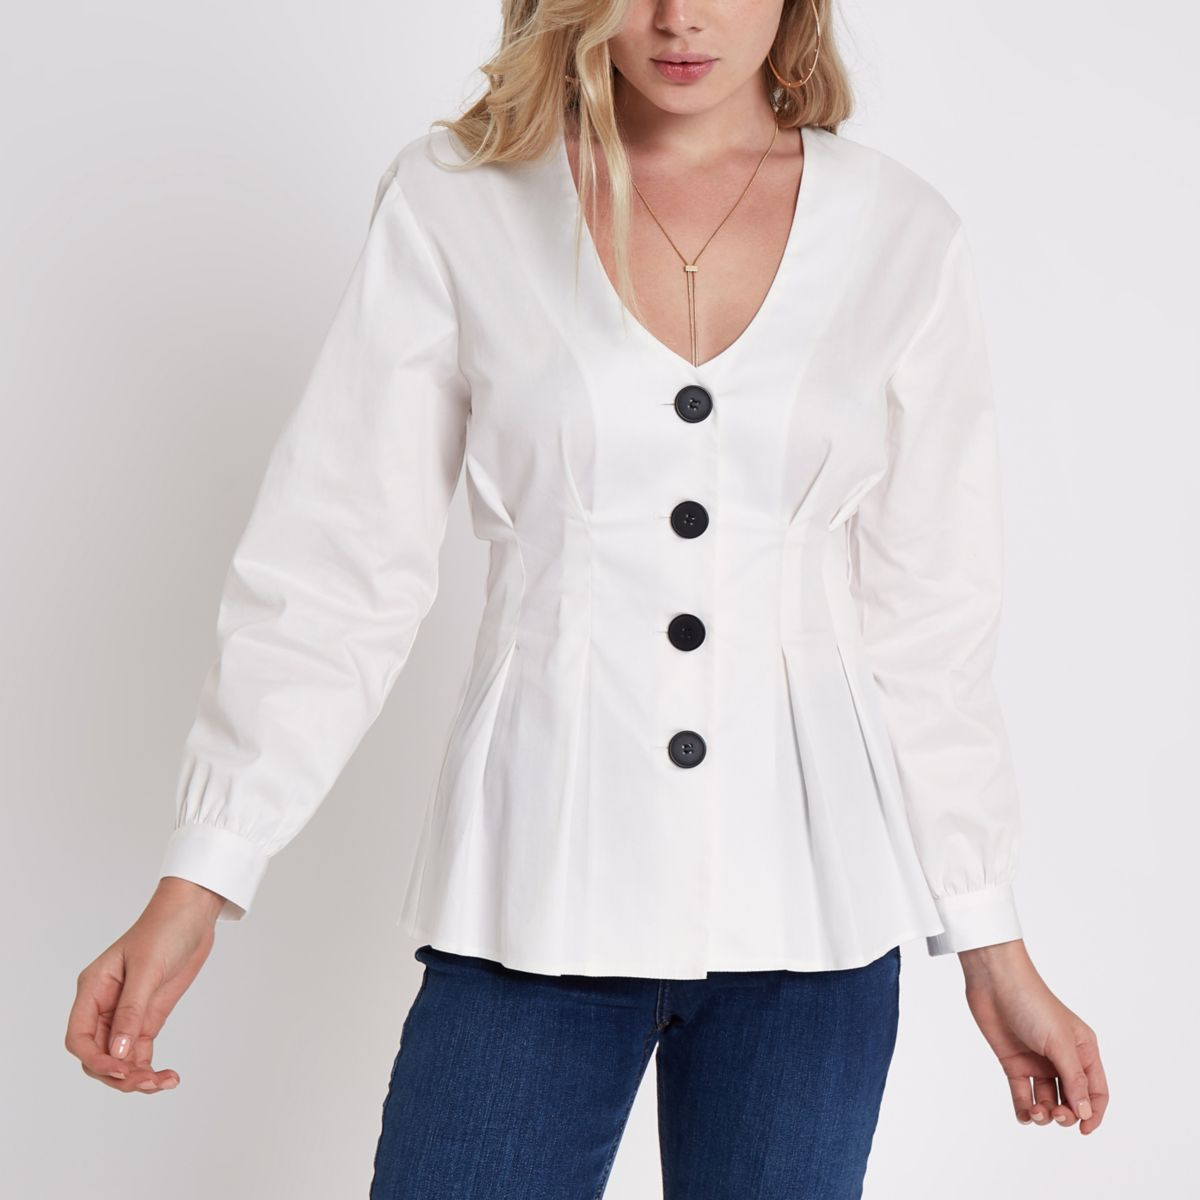 White V neck button front blouse